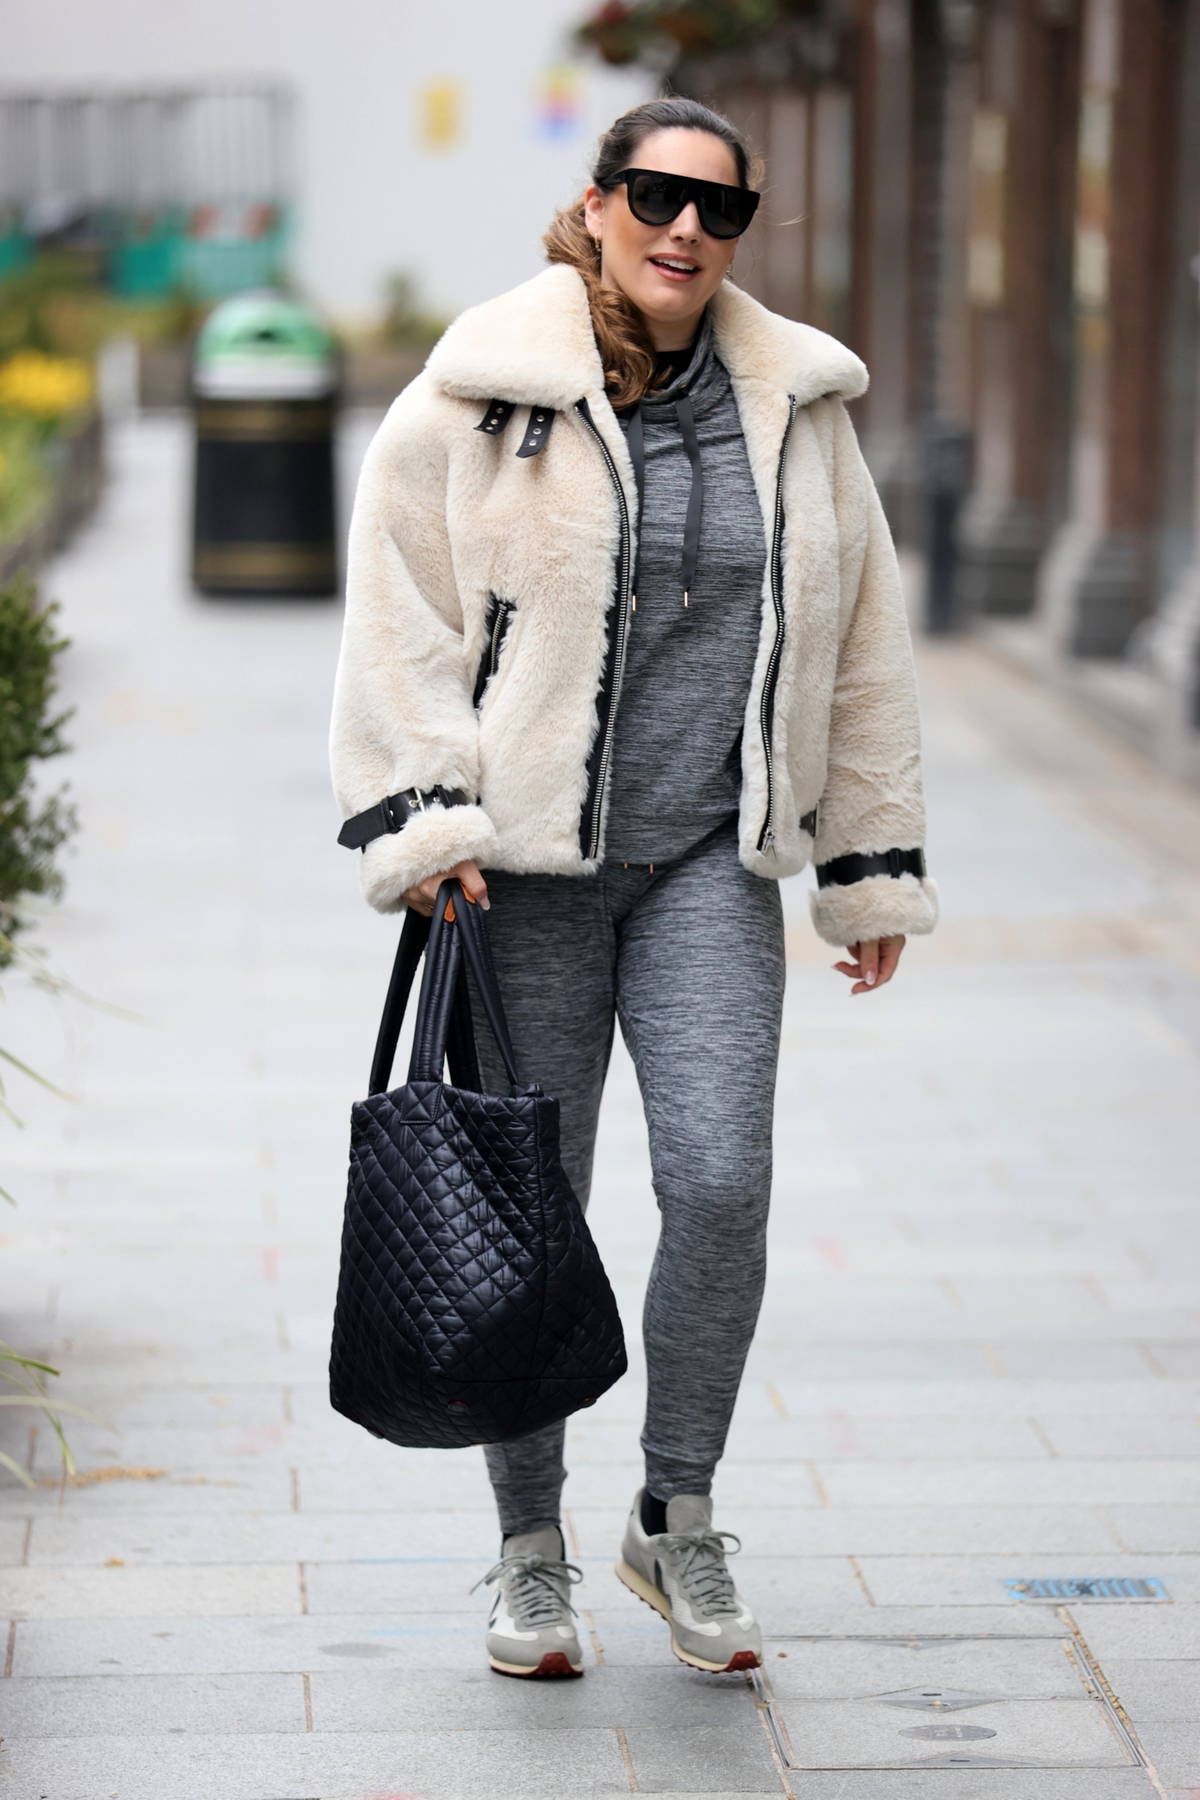 Kelly Brook wears a cream fur jacket over grey sweats while arriving for her Heart Radio show in London, UK